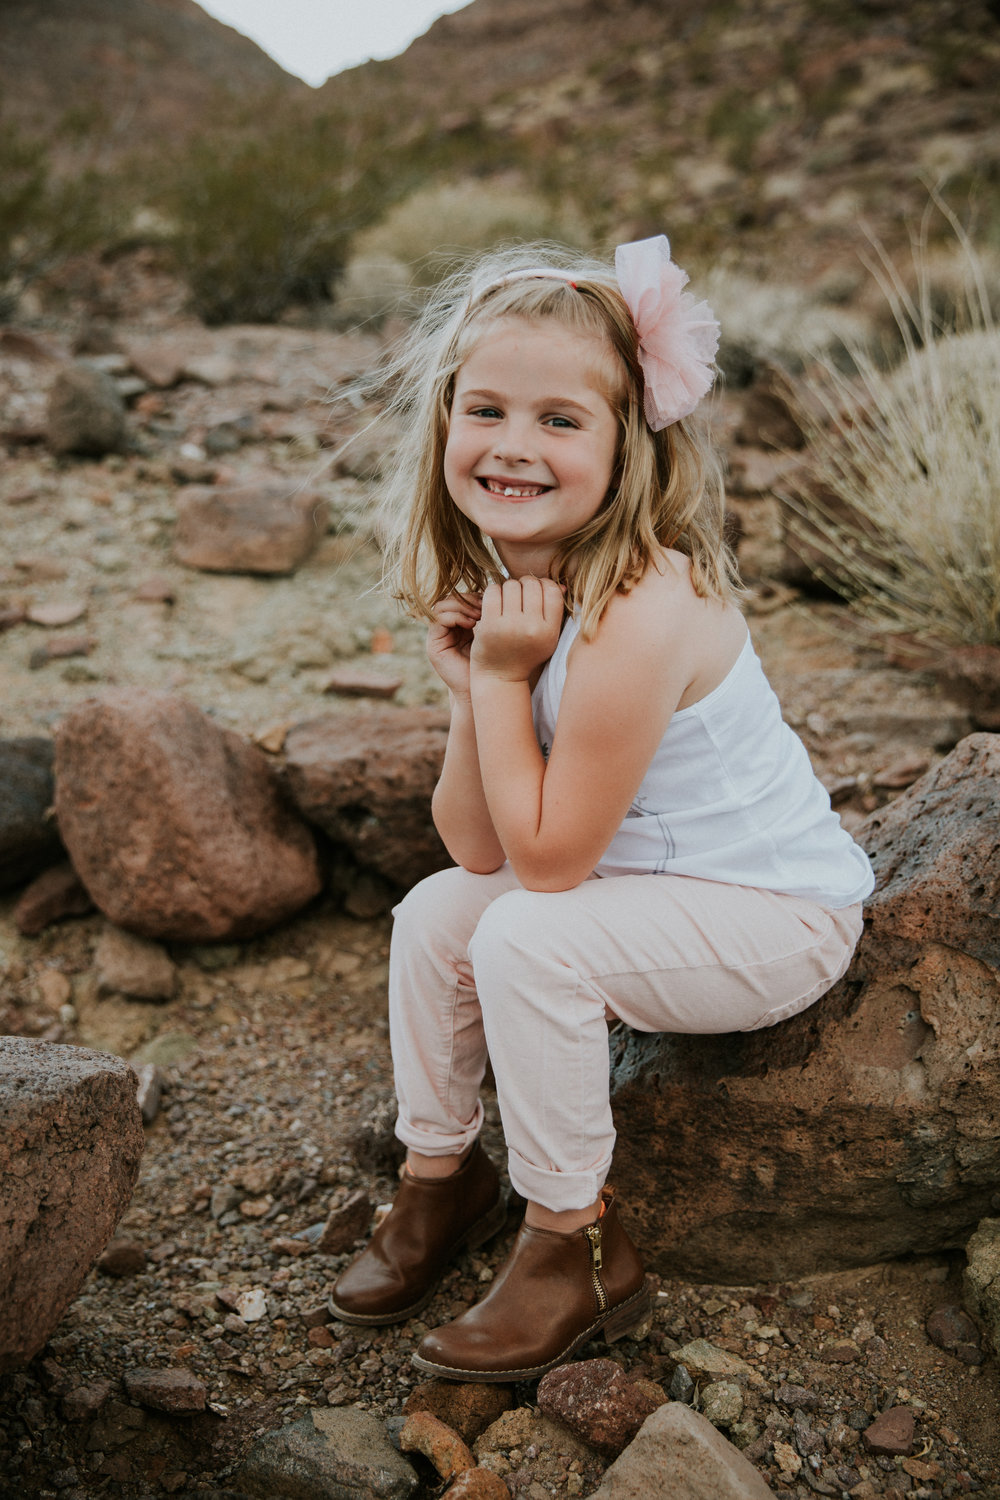 Lifestyle Family Photography - Las Vegas Photographer - Desert Landscape - Henderson, NV - Mother and Daughter